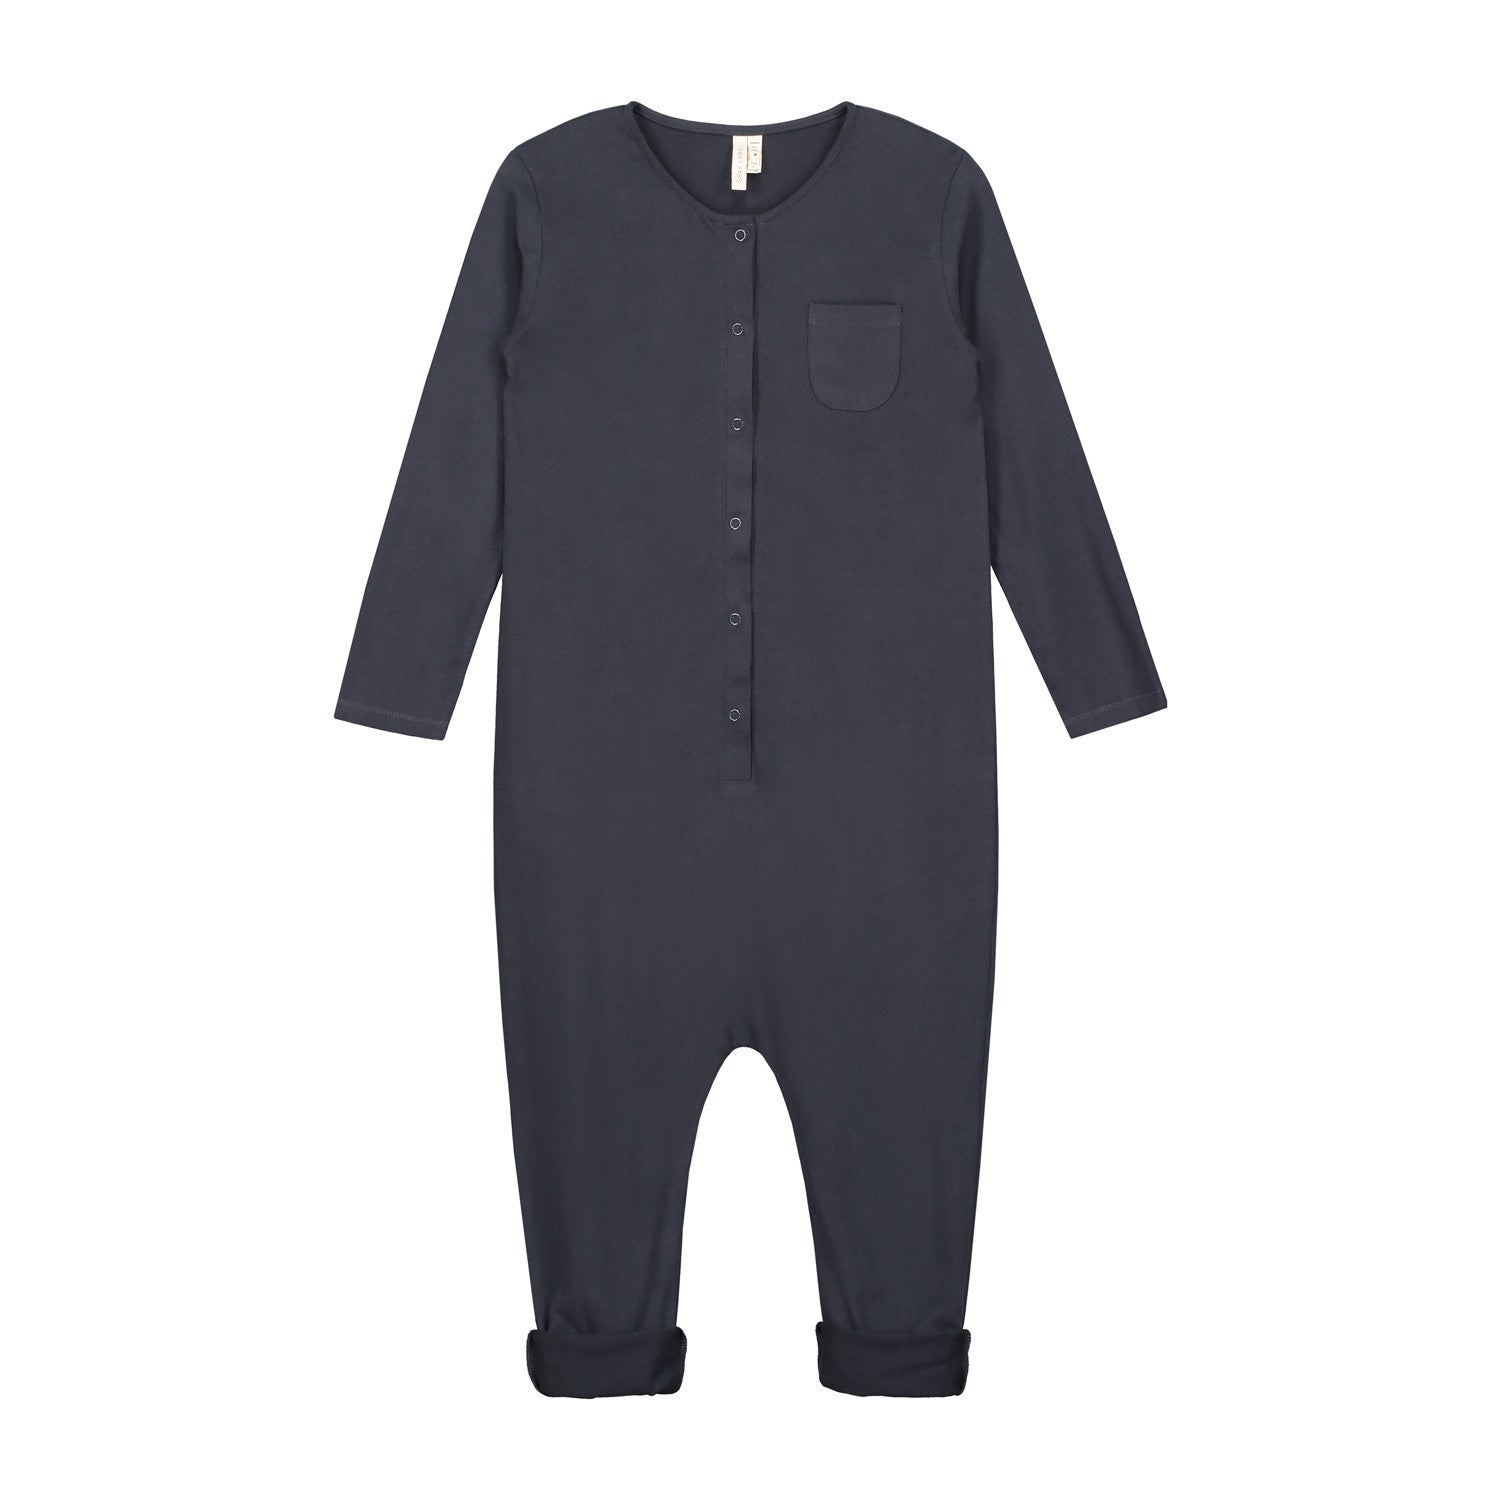 BABY L/S PLAYSUIT IN NIGHT BLUE